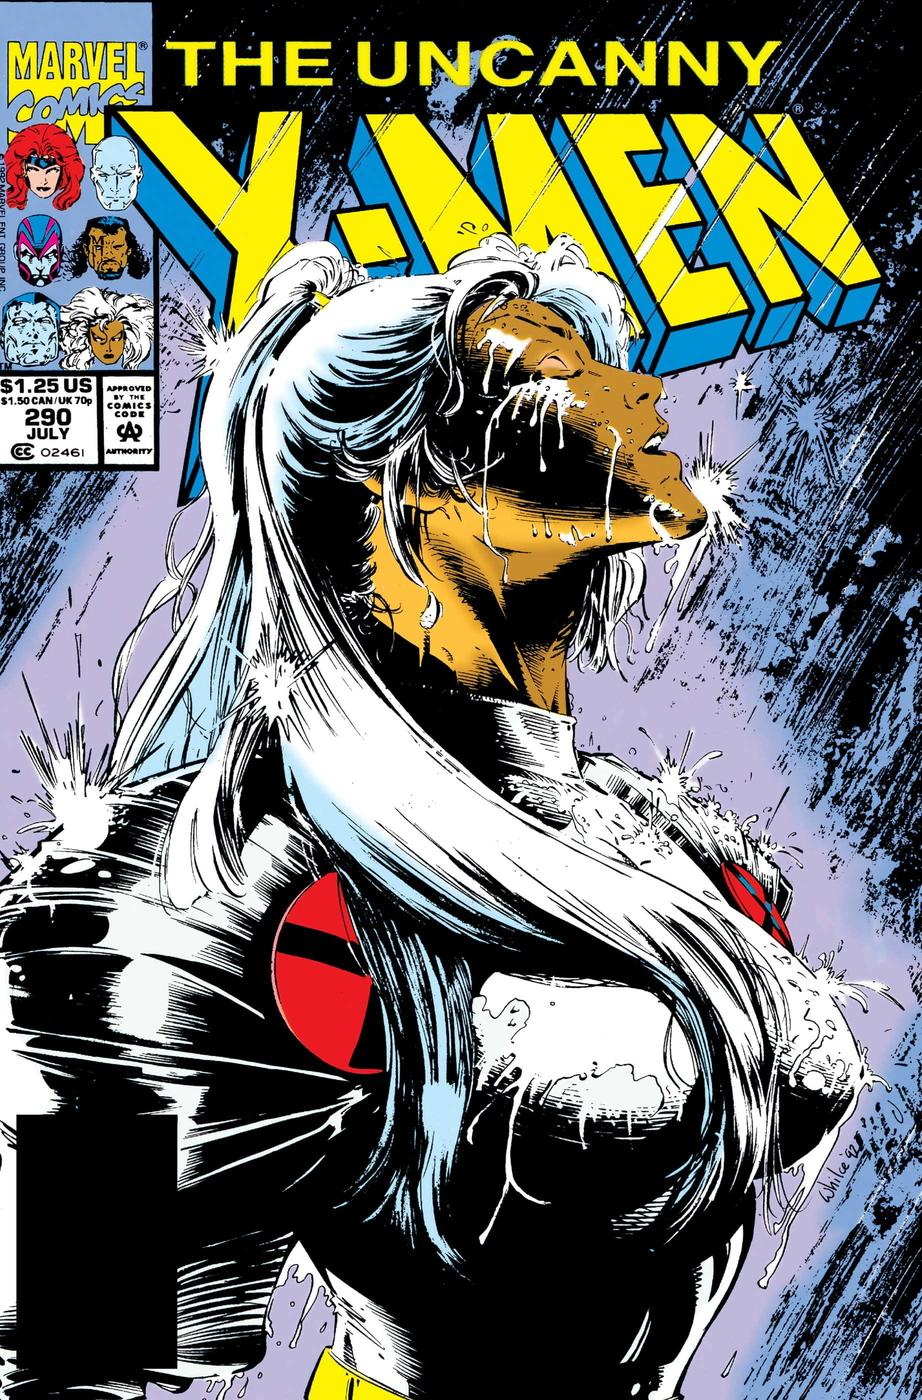 UNCANNY X-MEN (1963) #290 by Whilce Portacio